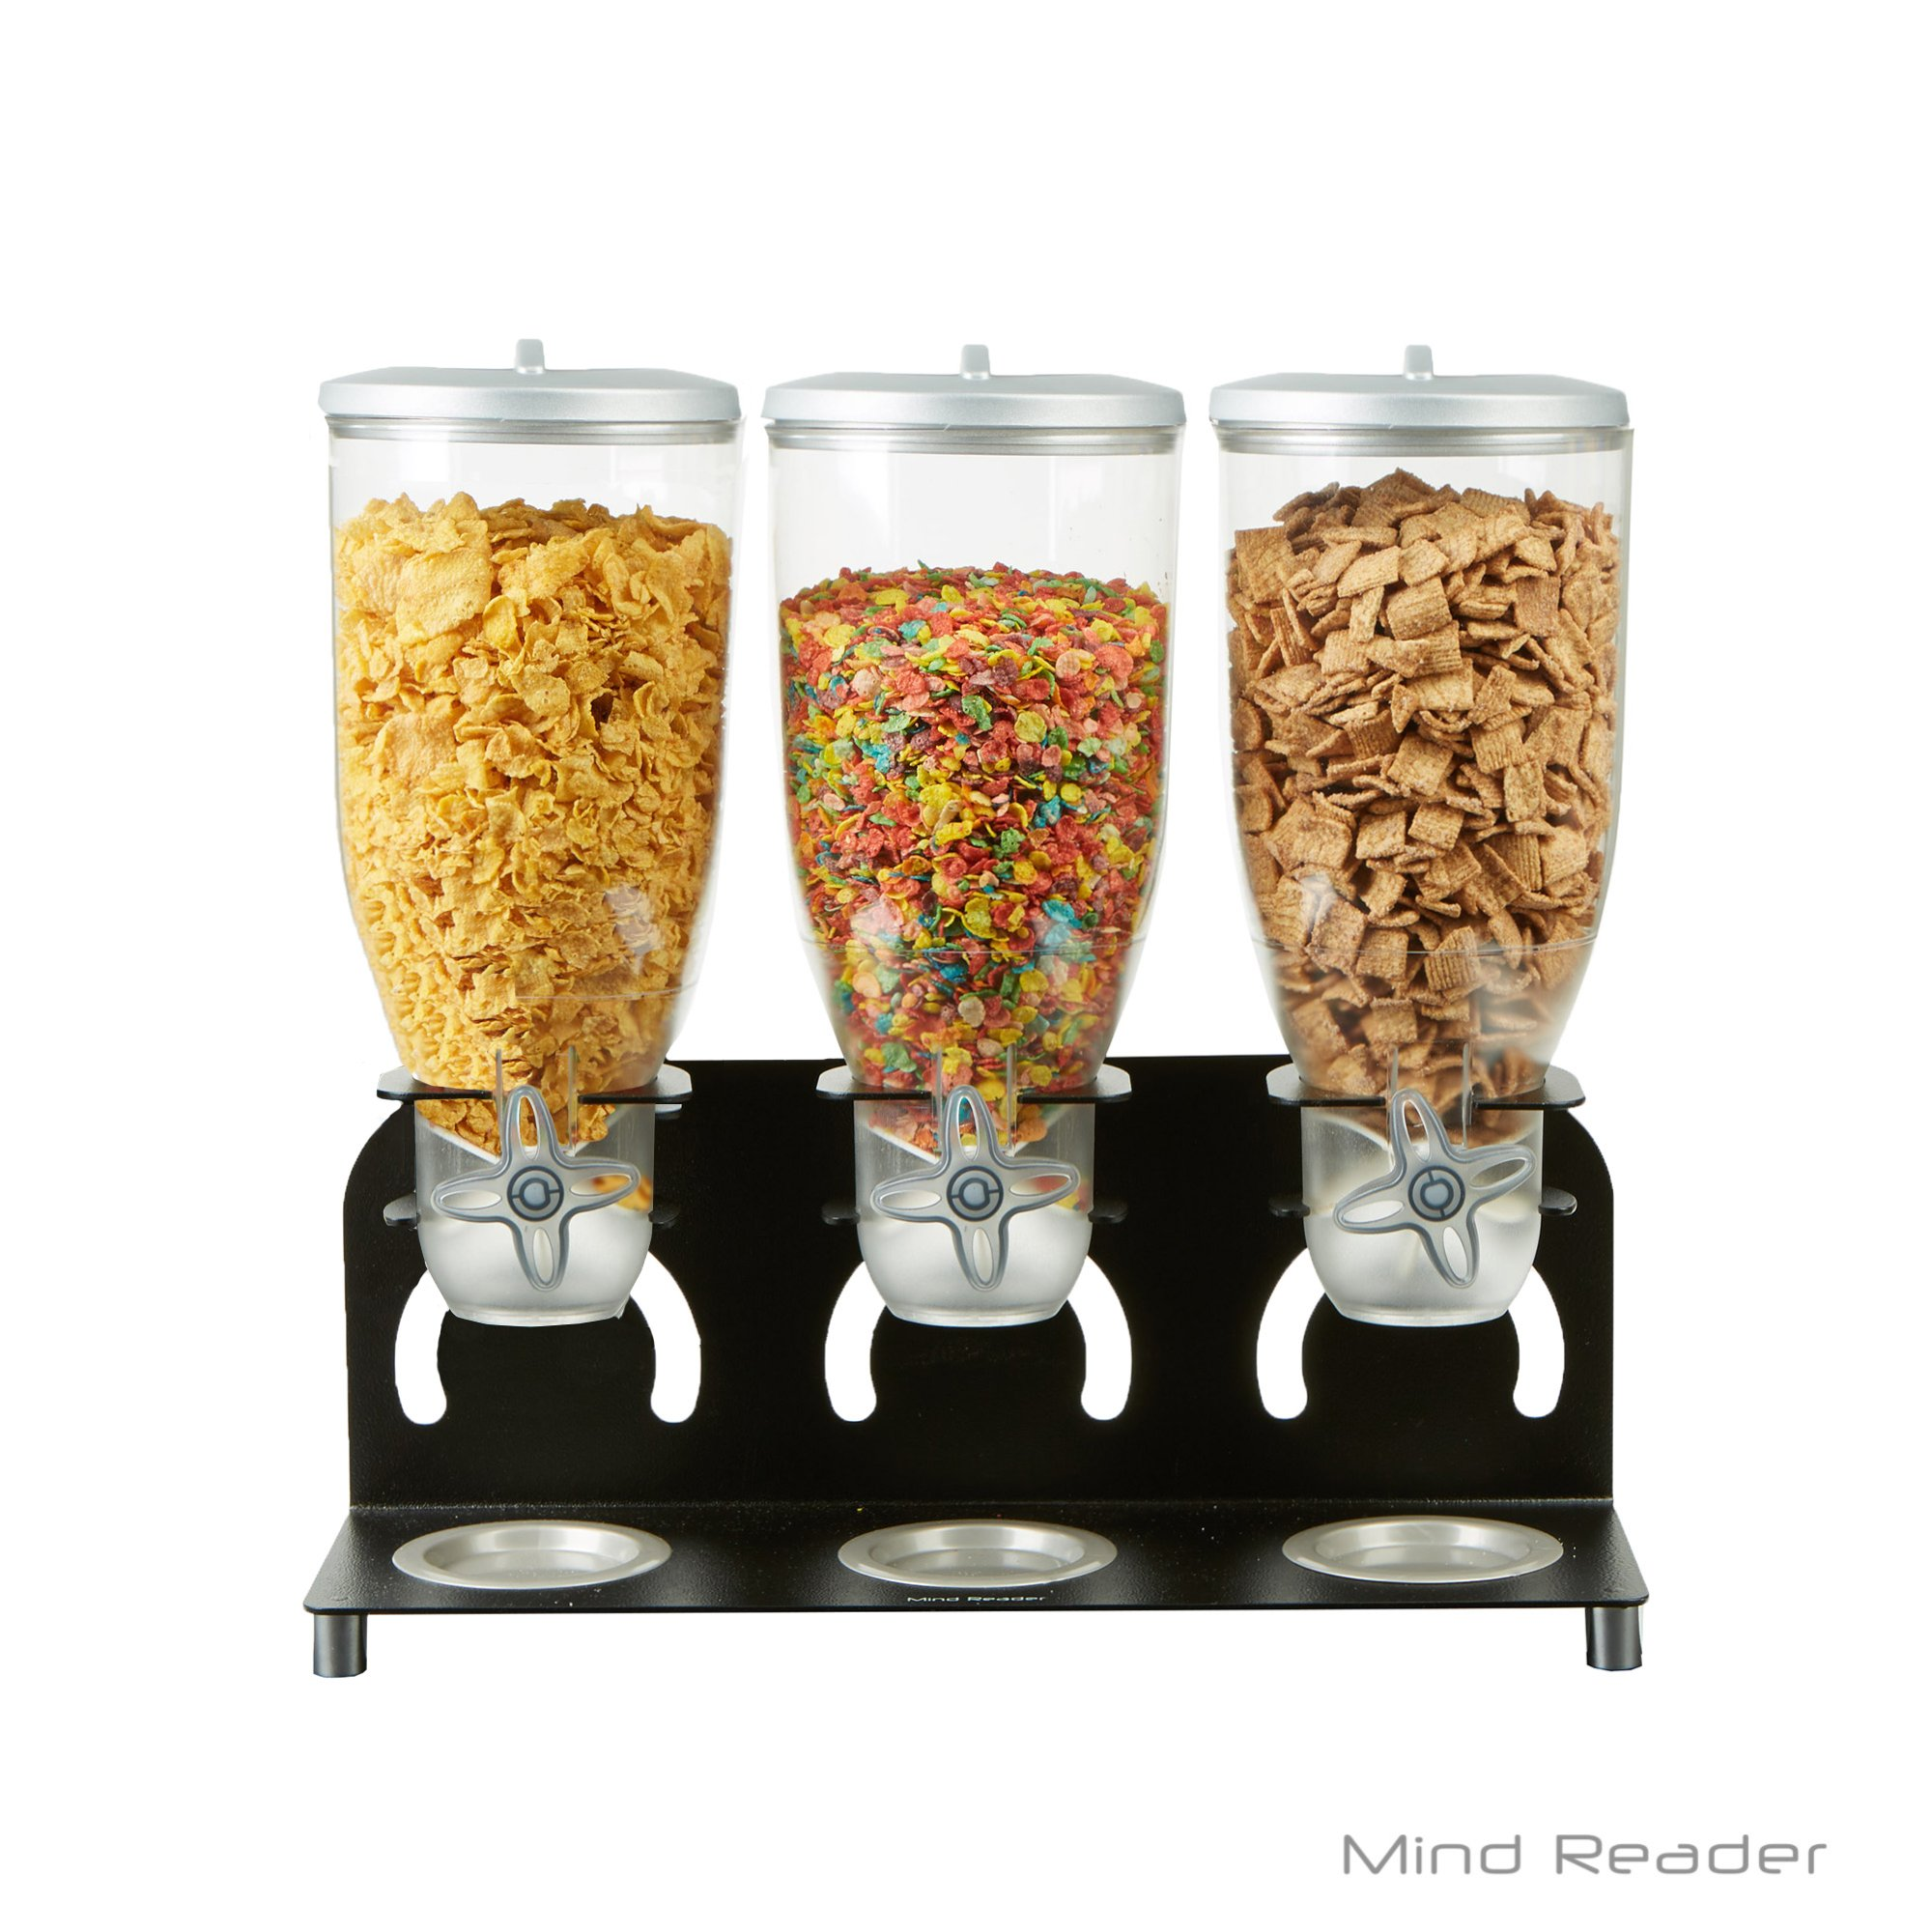 Mind Reader KELL300-BLK Metal Cereal Dispenser, triple, Black